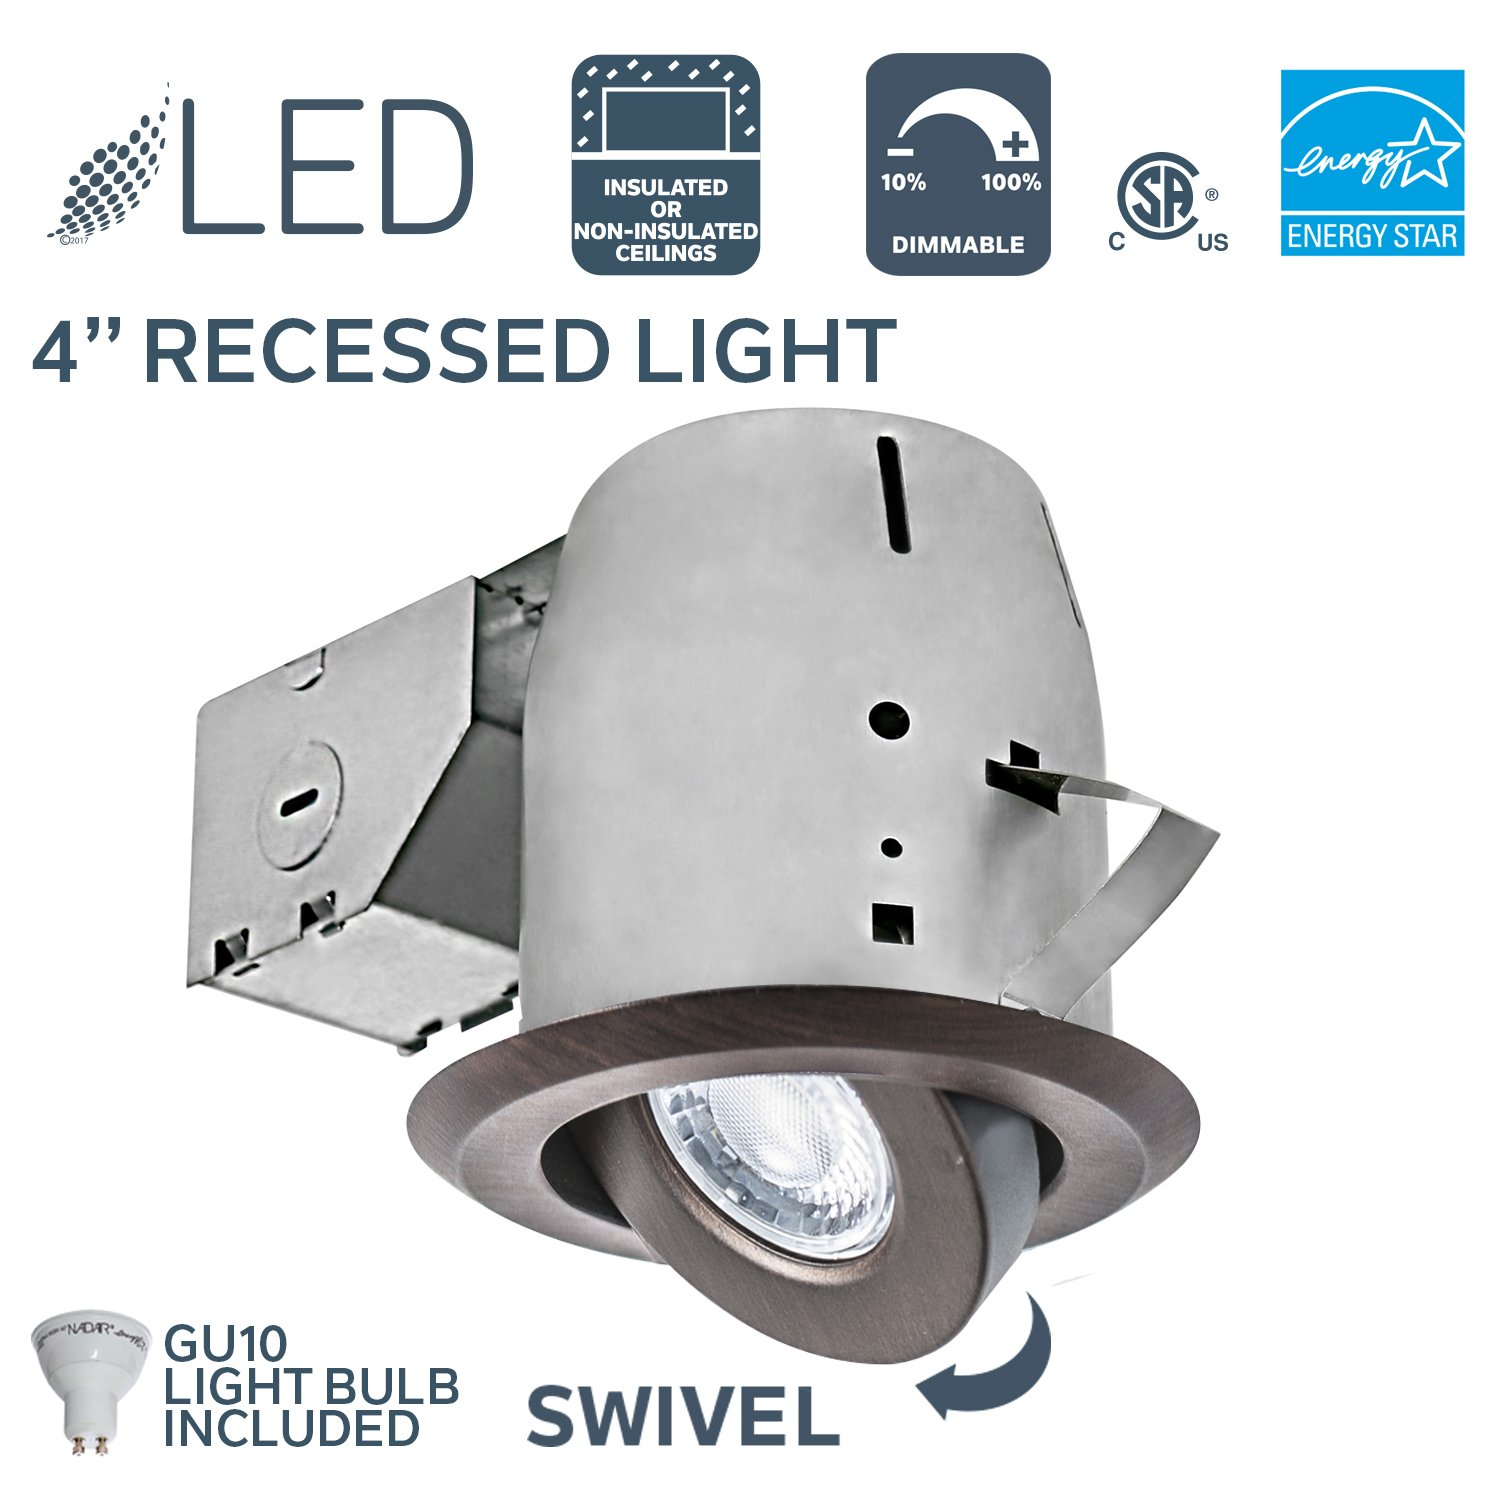 Nadair GU378L-SWORB 4in LED Retrofit Downlight Swivel Spotlight Dimmable Downlight - IC Rated - 3000K Warm White GU10 550 Lumens Bulb (50 Watts Equivalent) Included, Bronze Color